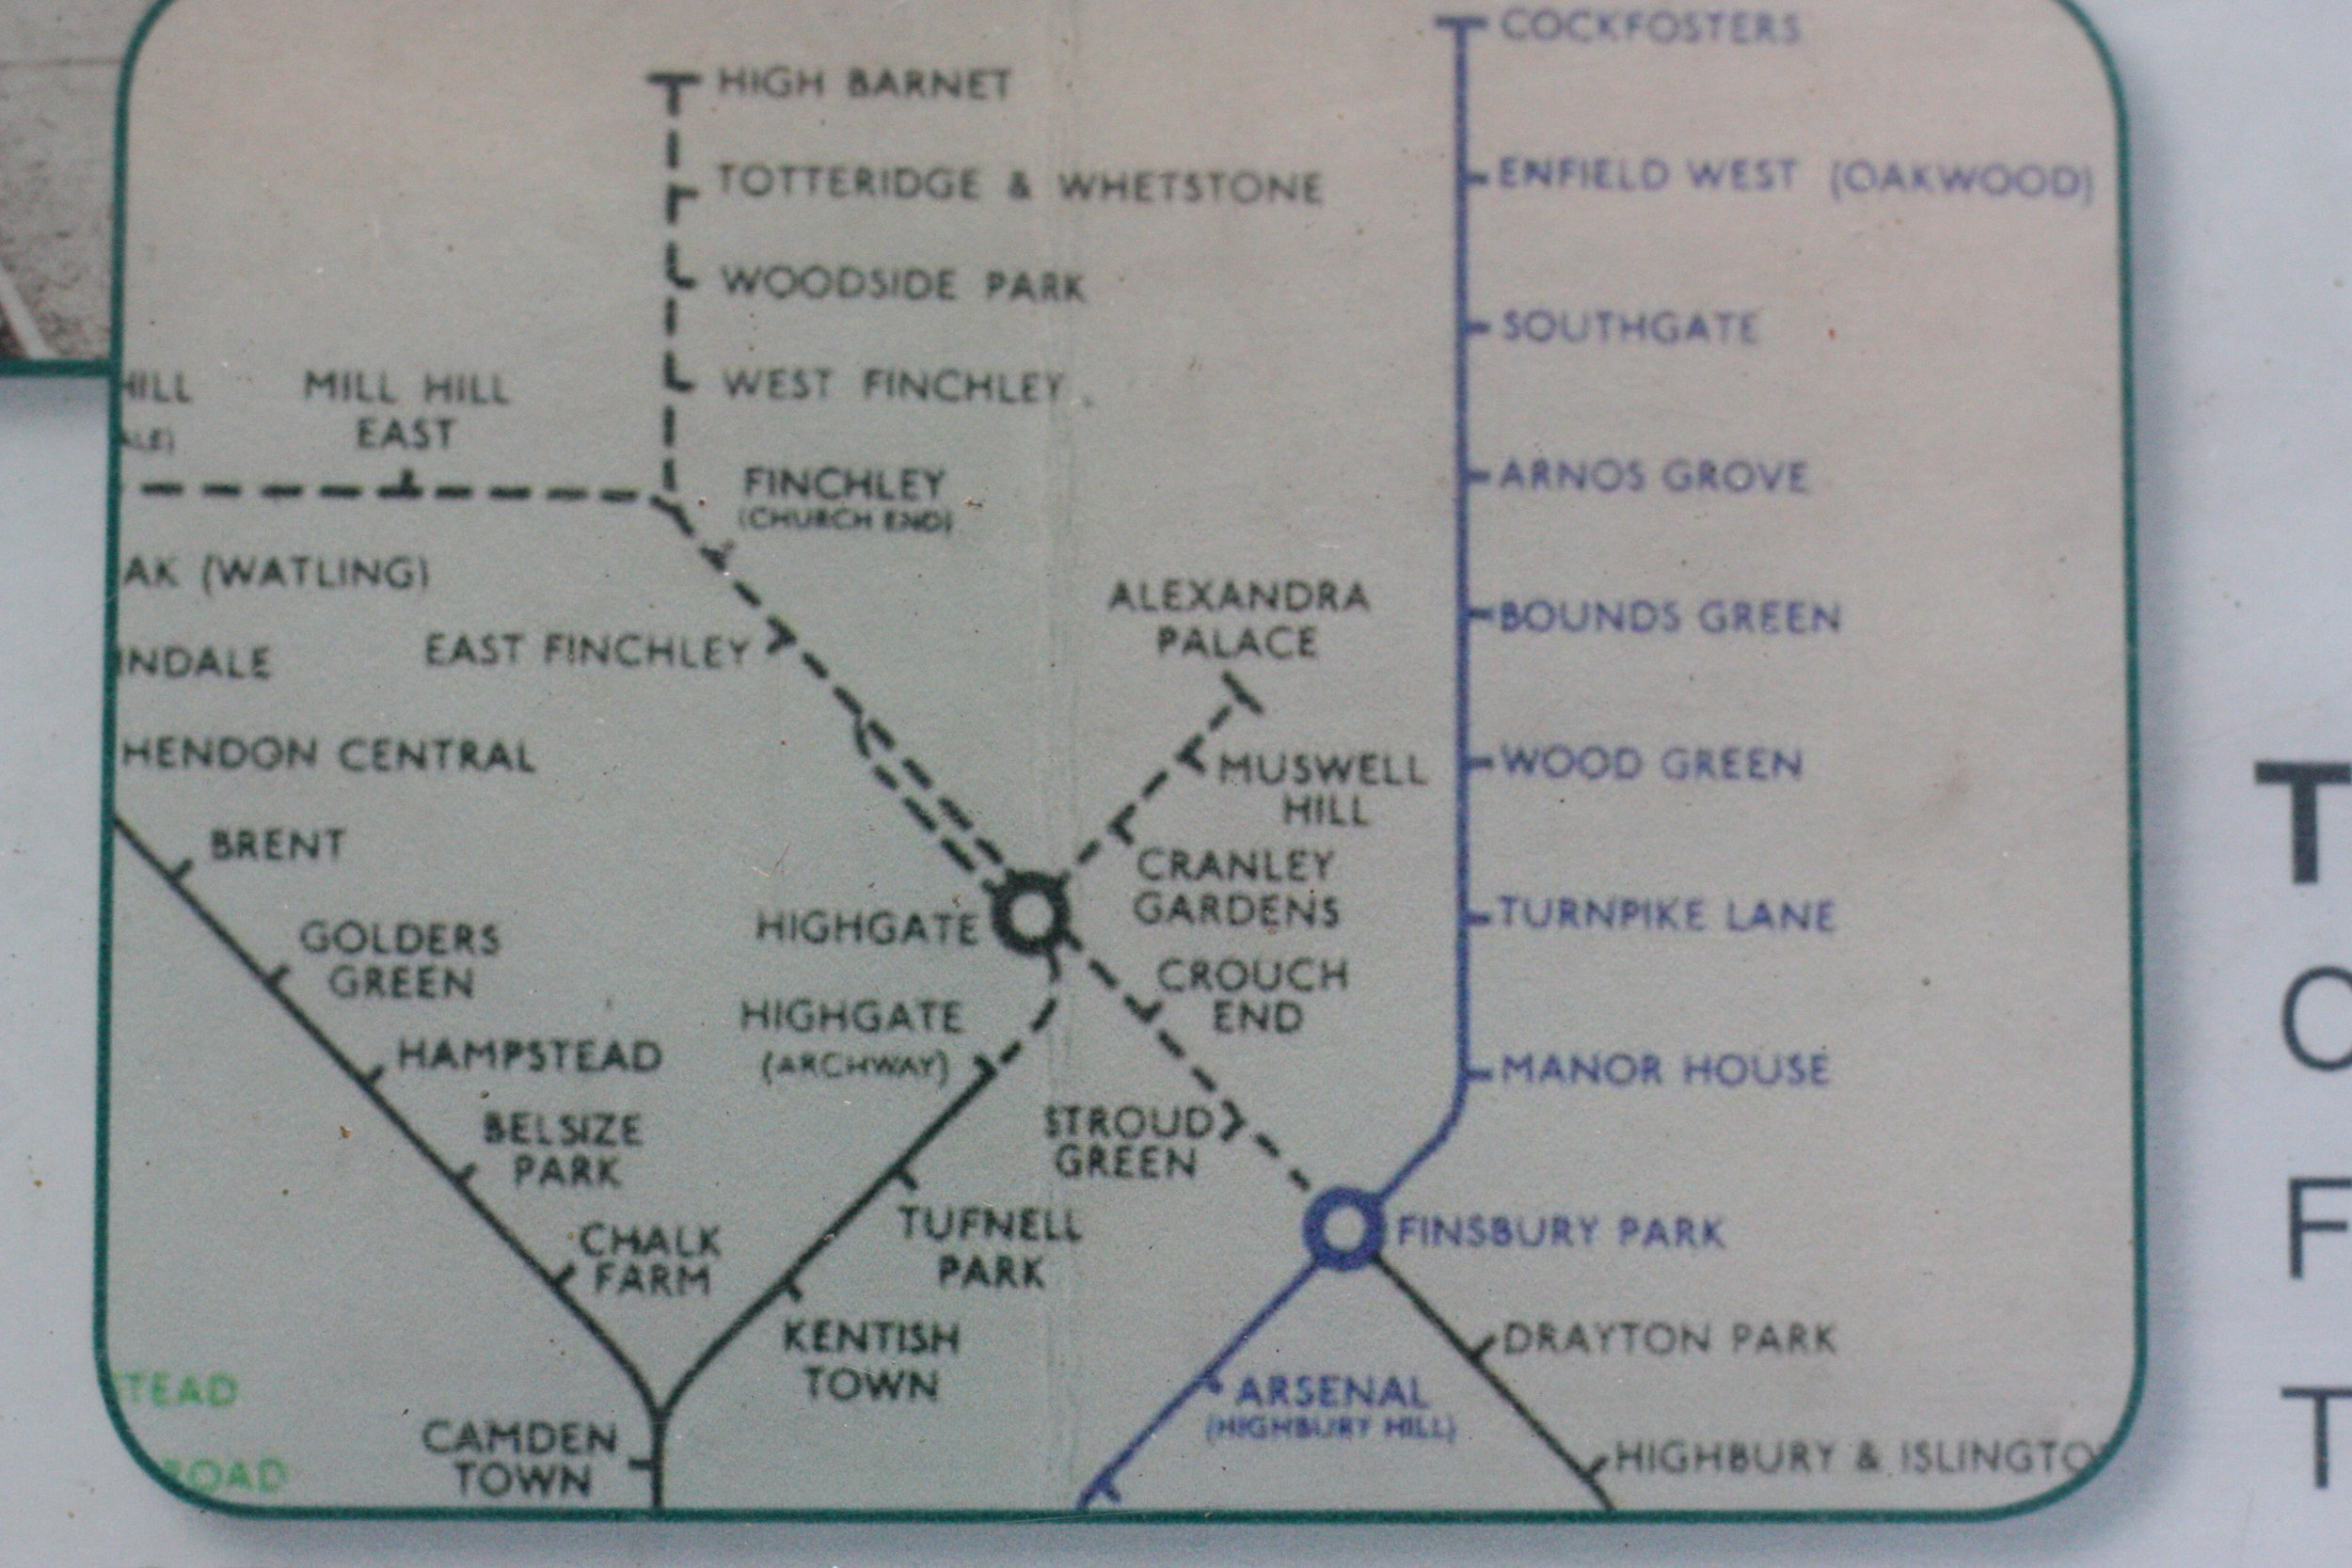 We walked from Alexandra Palace along the - line to Highgate, and then from Highgate along the - line to Finsbury Park.